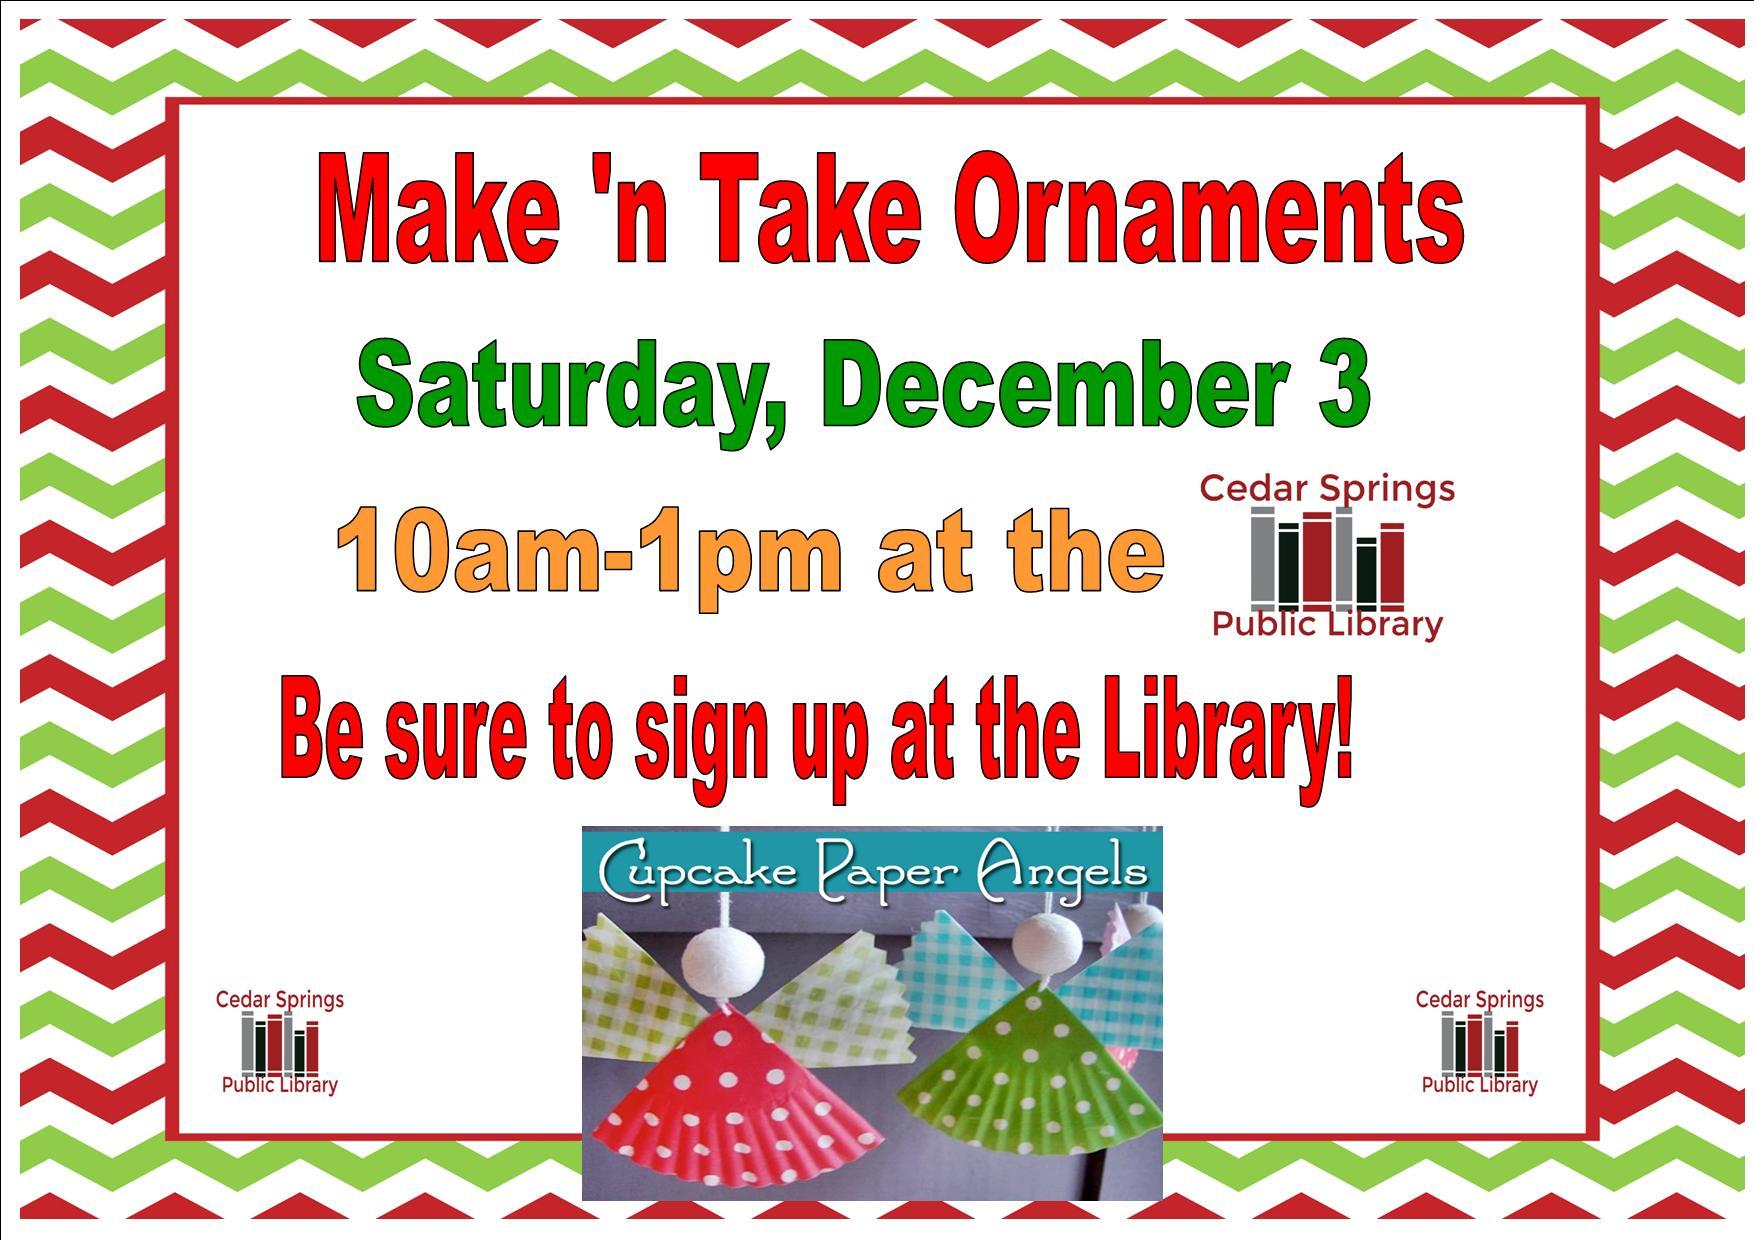 make-n-take-ornaments-flyer